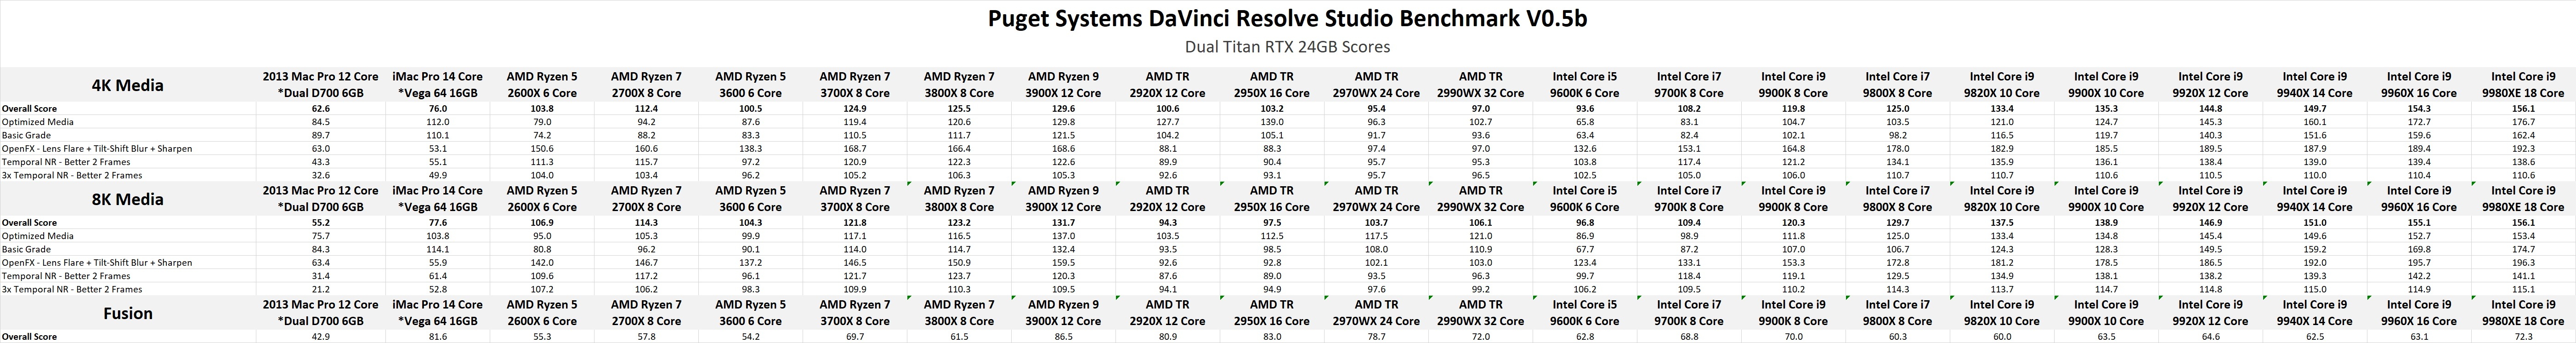 DaVinci Resolve Studio CPU Roundup: AMD Ryzen 3, AMD